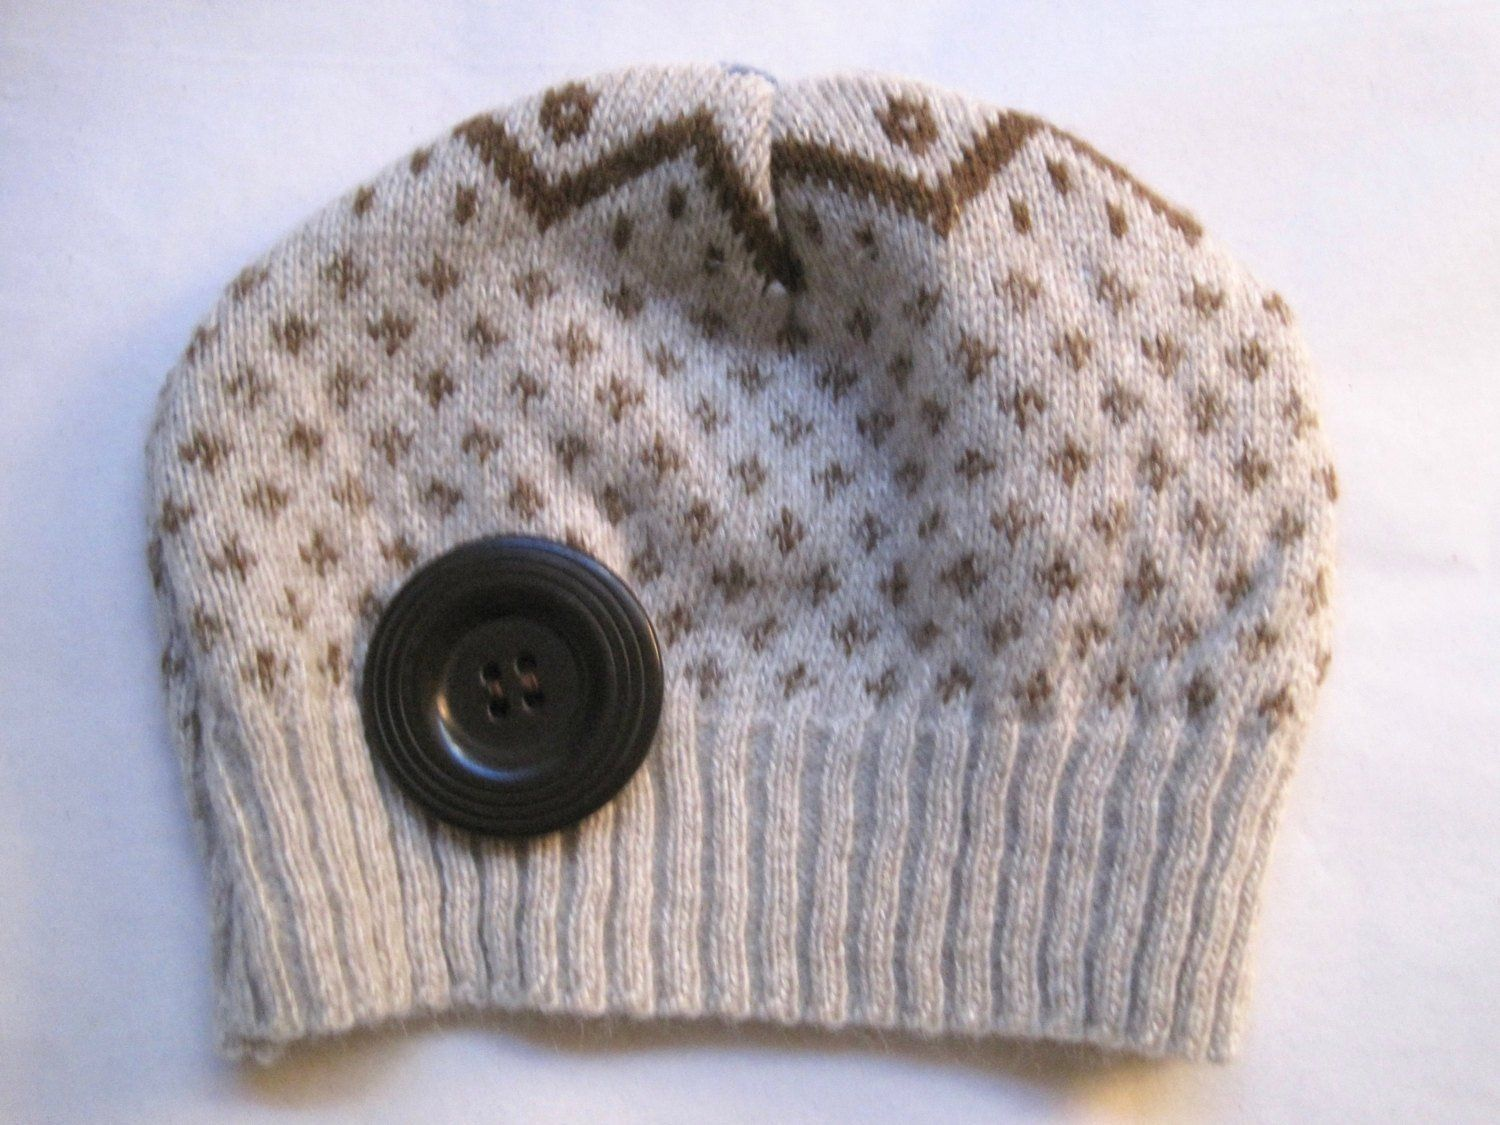 Infant Premie Baby Boy Recycled Sweater Beanie with Matching Button Accent Baby Boy Winter Hats by theraggedyrose on Etsy #premiebabyhats Infant Premie Baby Boy Recycled Sweater Beanie with Matching Button Accent Baby Boy Winter Hats by theraggedyrose on Etsy #premiebabyhats